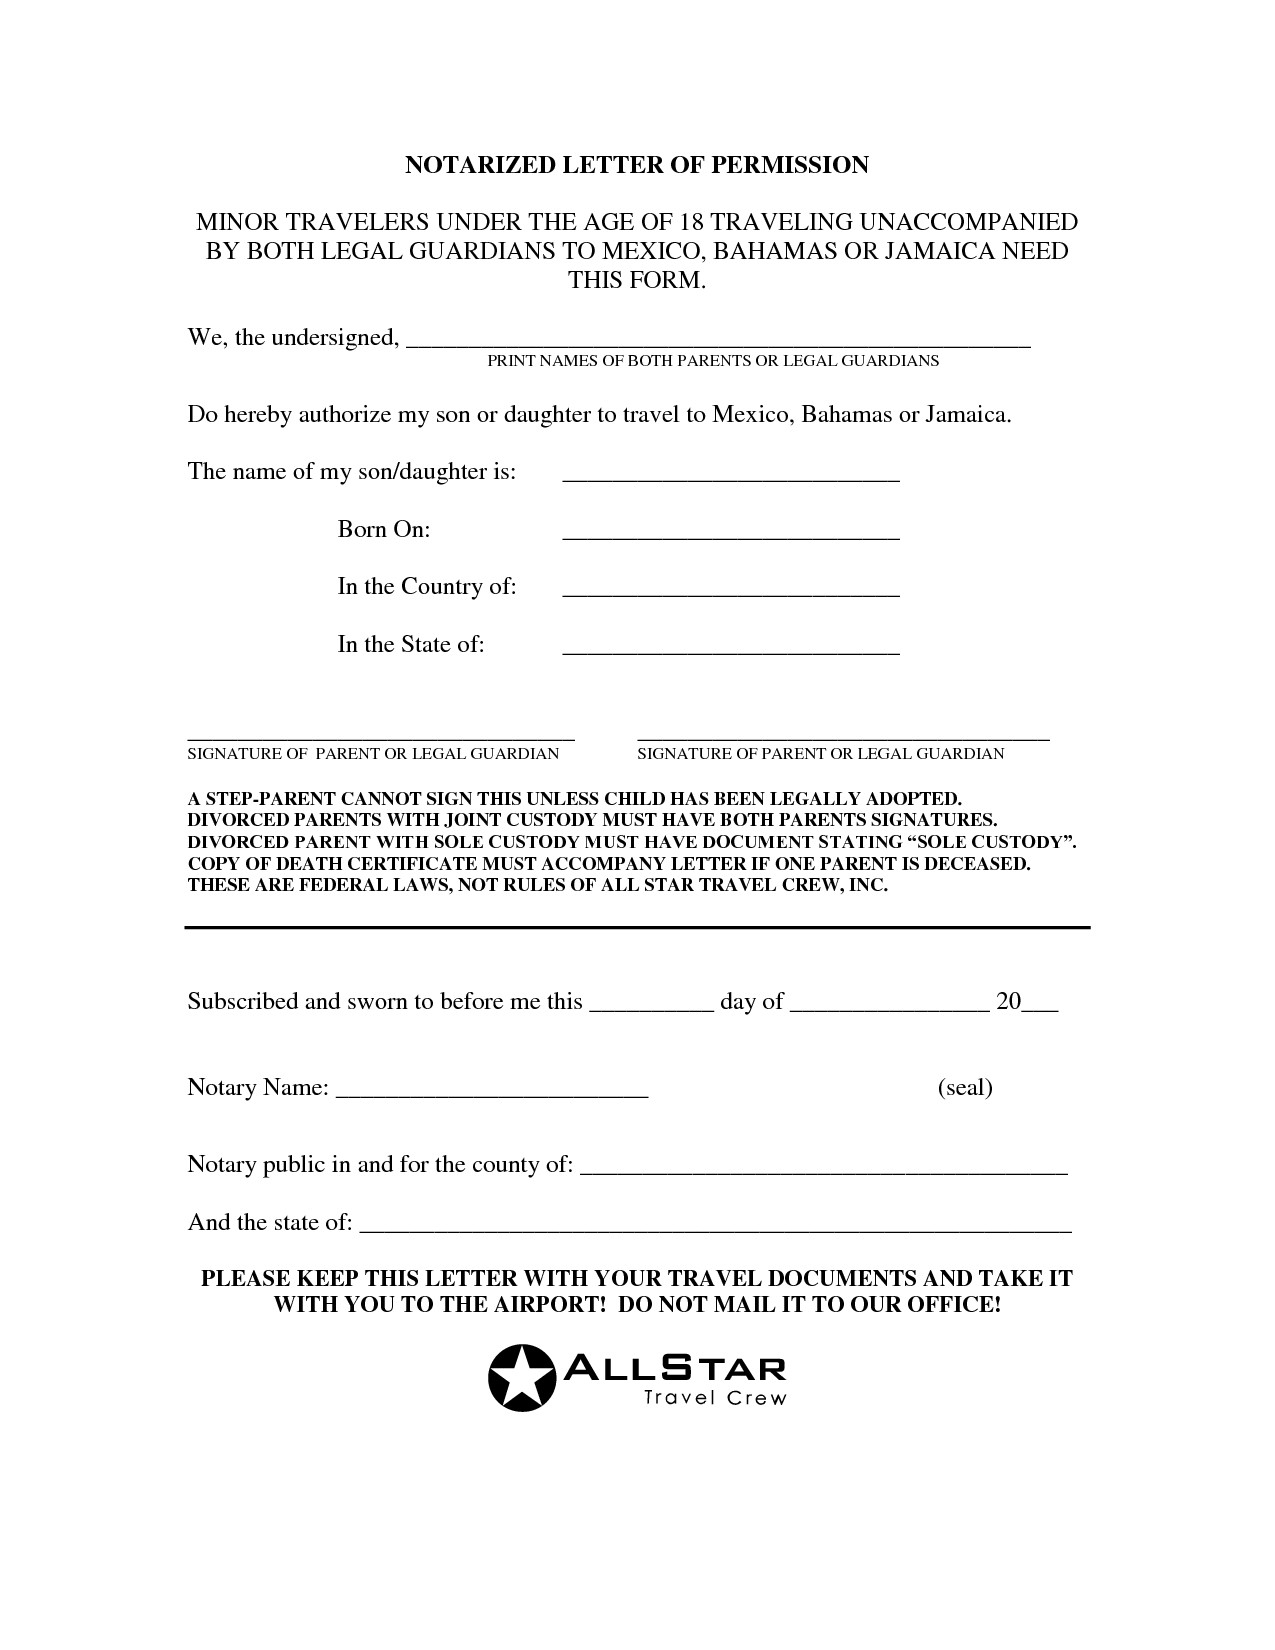 Notary Letter Template - How to Write A Letter that Needs to Be Notarized Image Collections